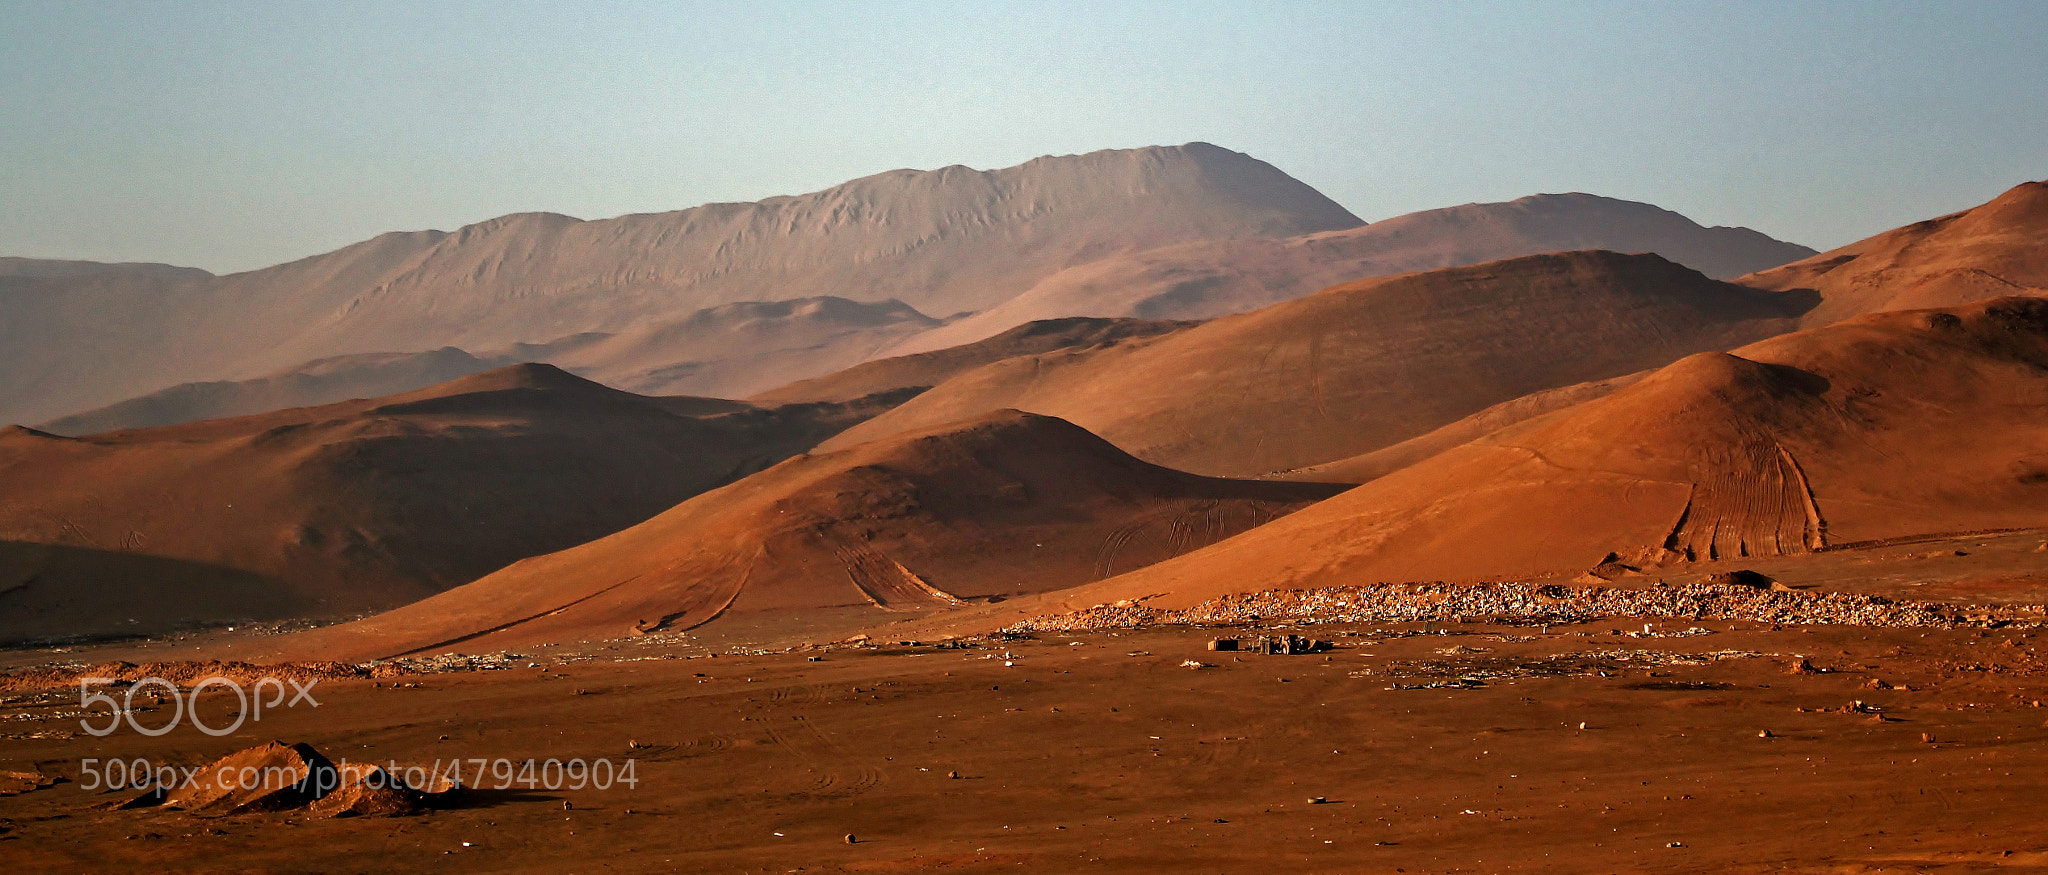 Photograph Burning Desert by Nora 80 on 500px